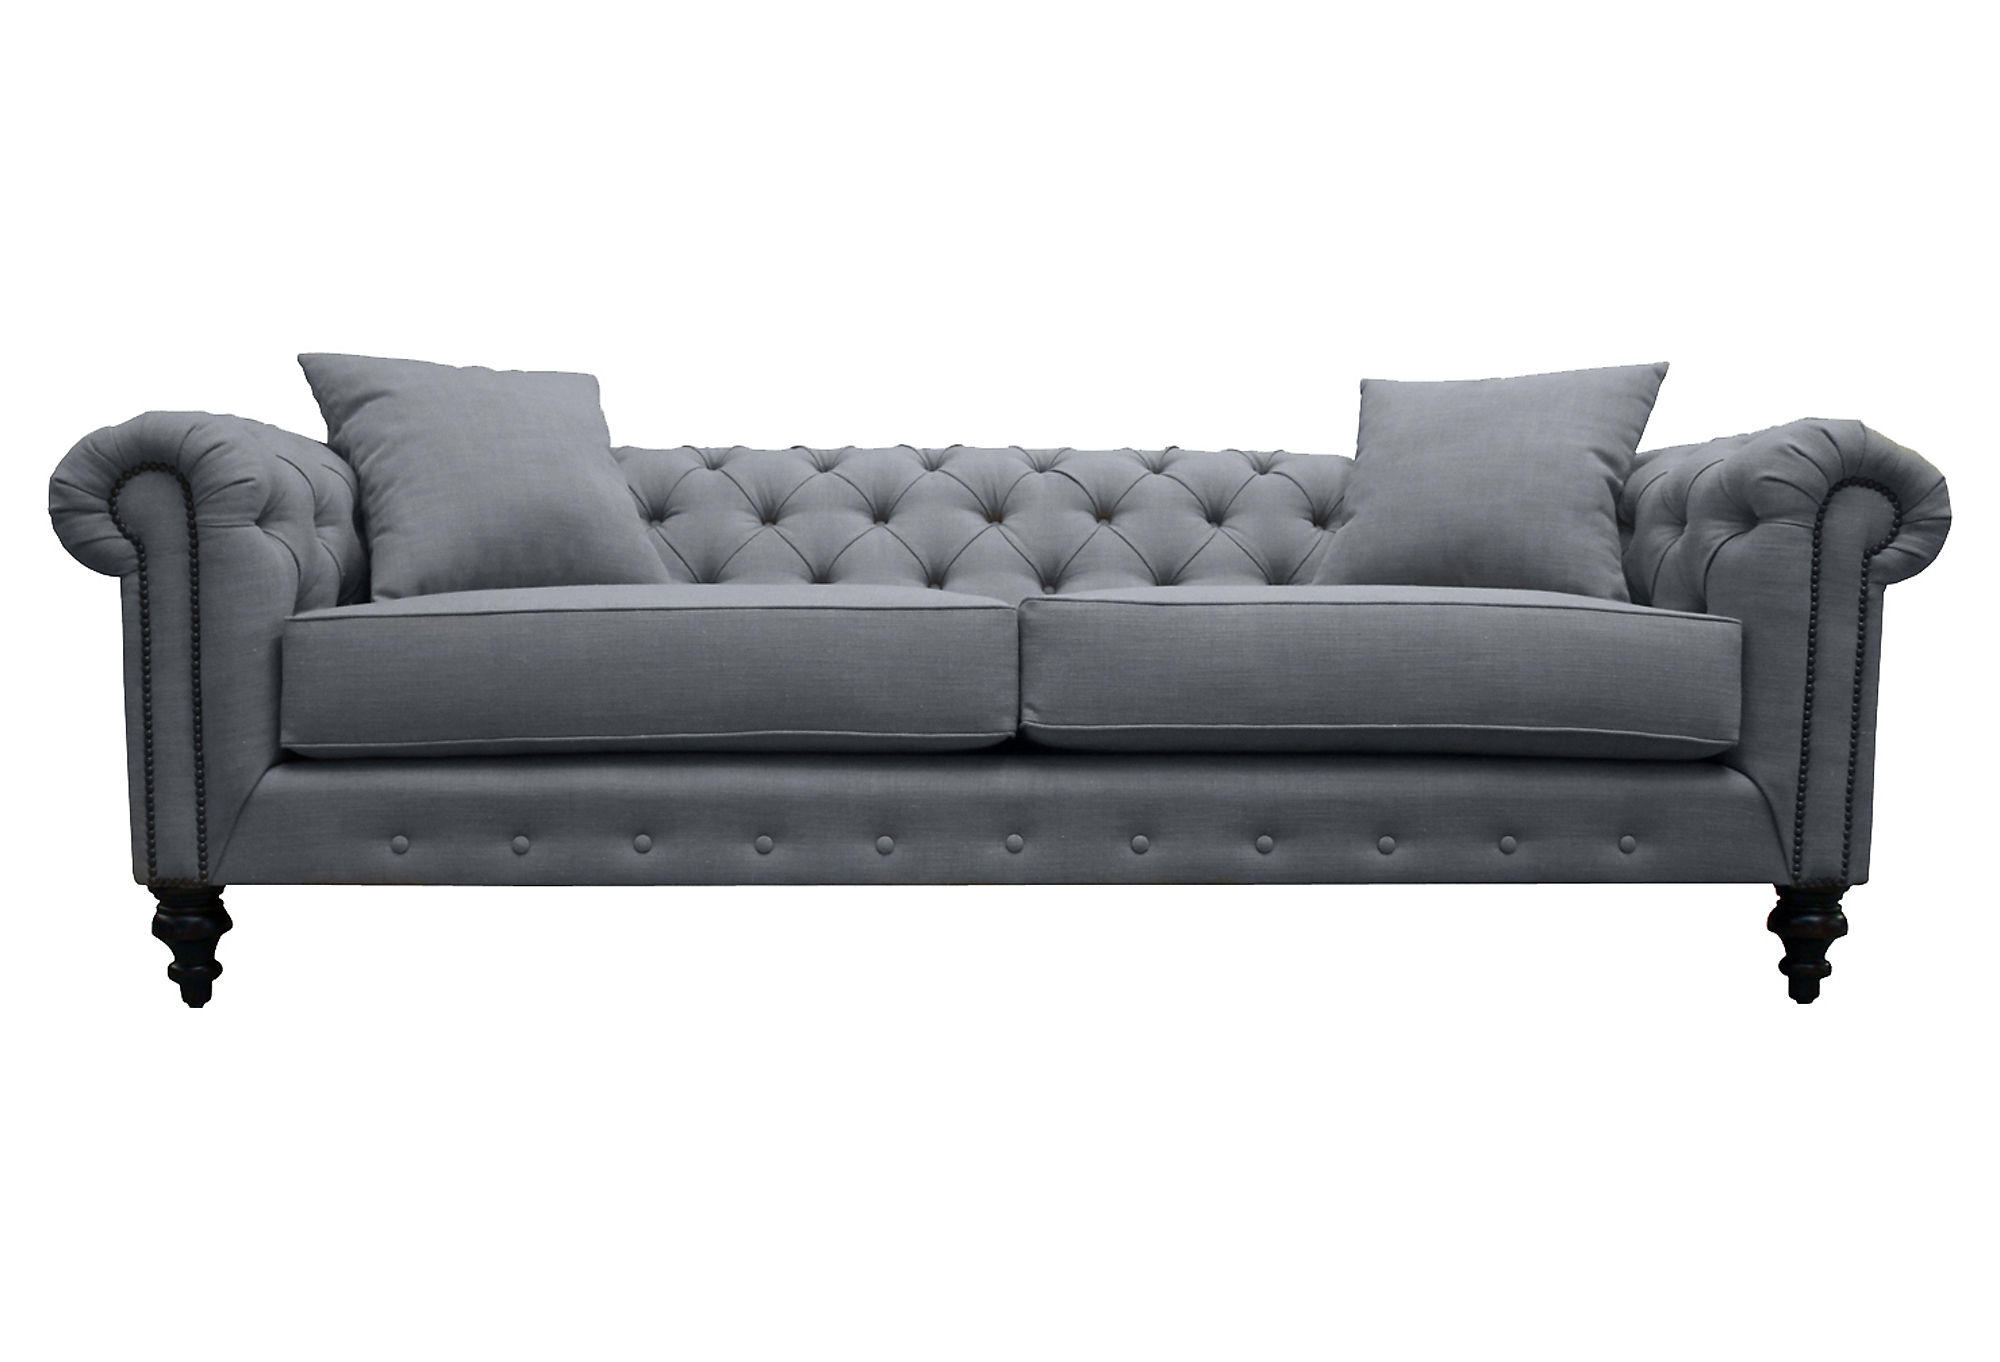 grey linen tufted sofa moheda corner bed cover maria 90 quot chesterfield gray from one kings lane